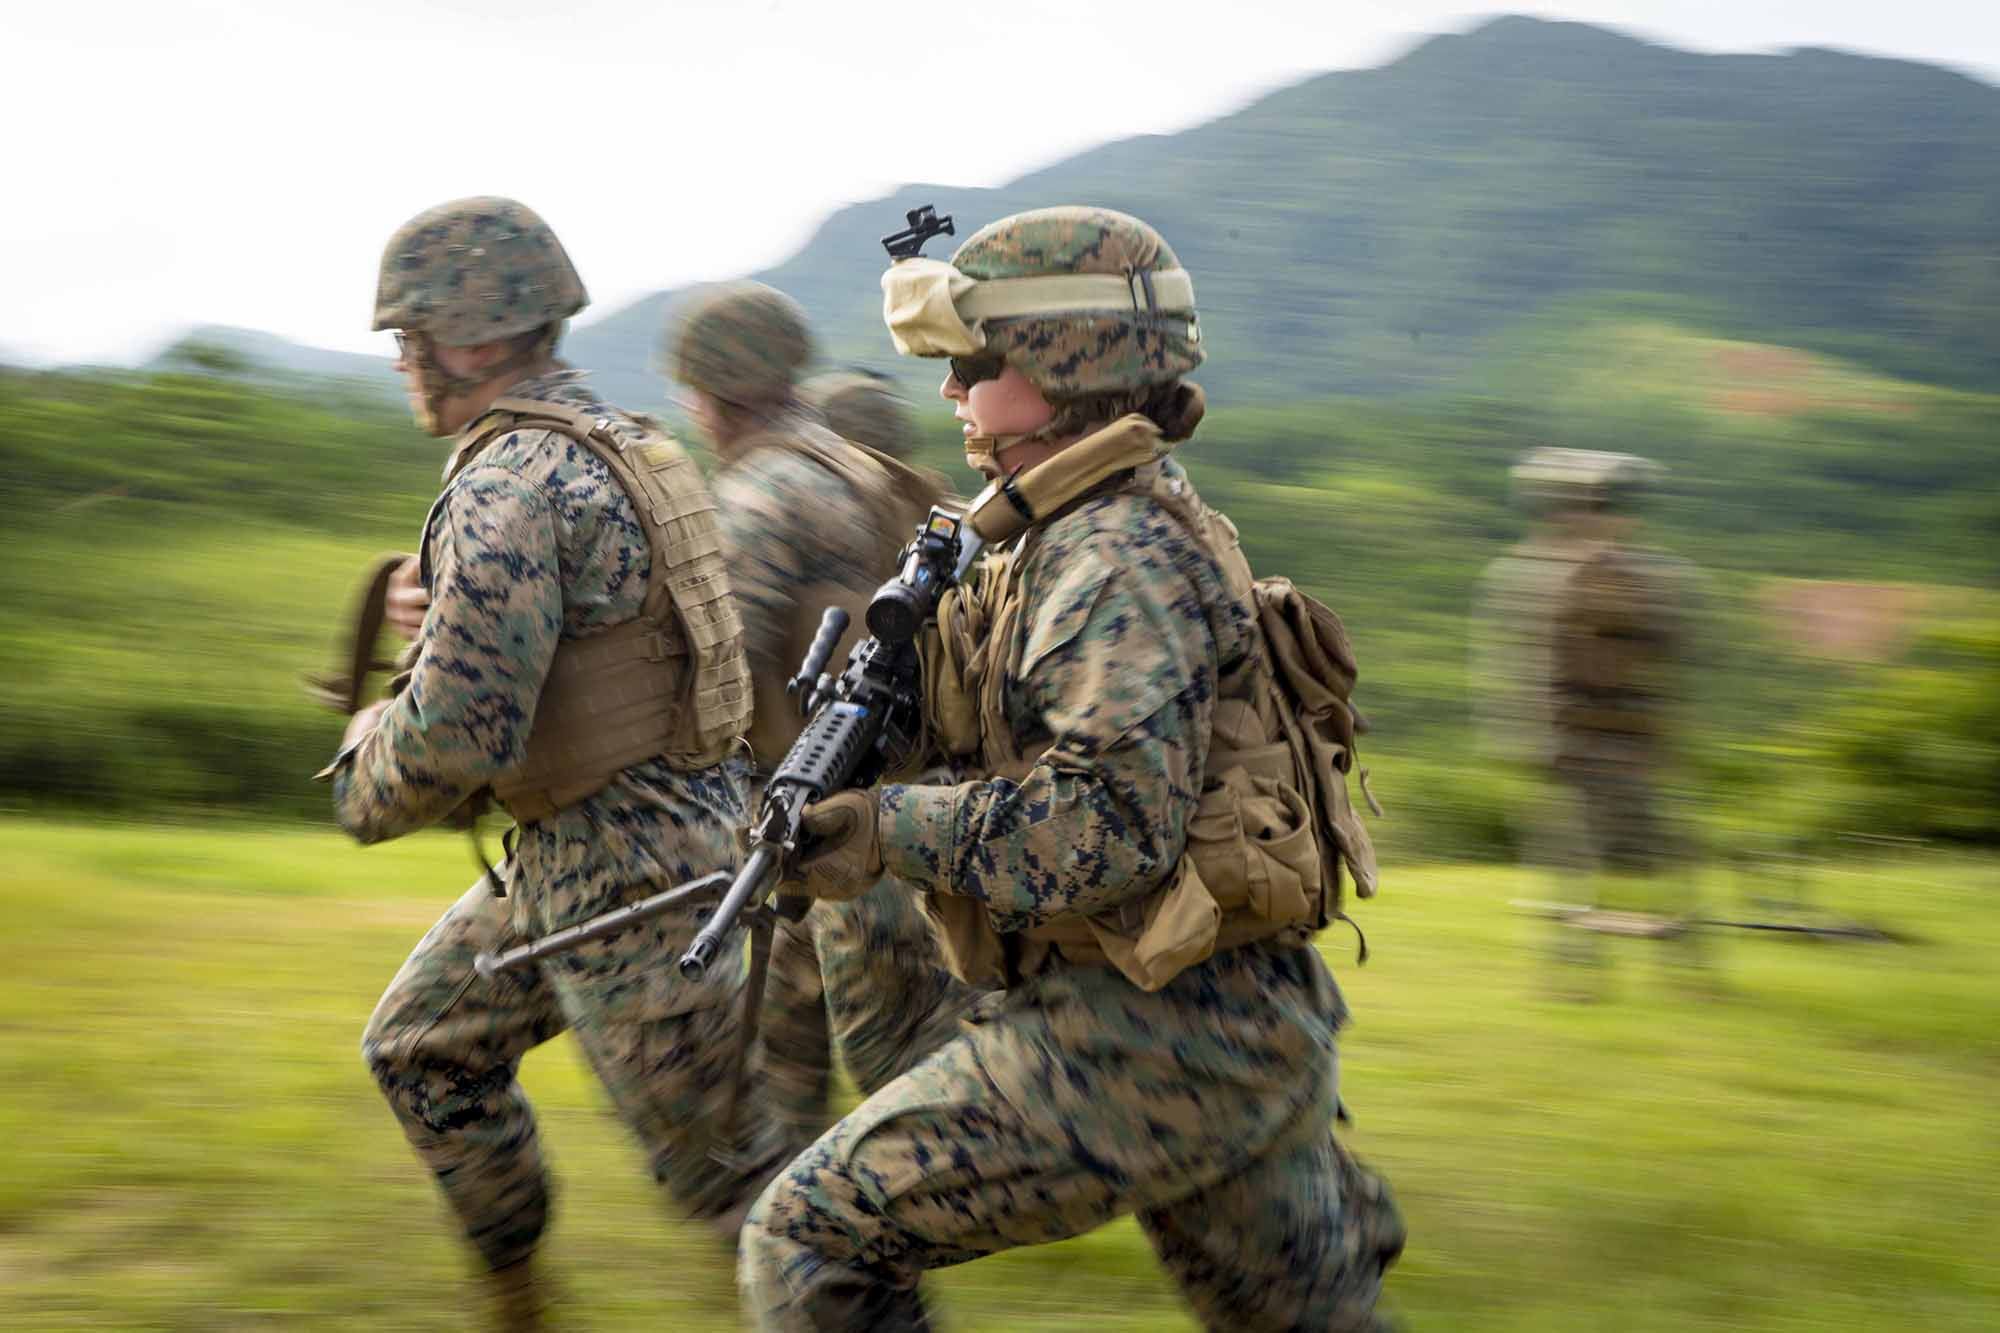 Lance Cpl. Mackenzie K. Price participates in a gun run during a training and readiness event on Range 9, Camp Hansen, Okinawa, Japan, Sept. 30, 2020. (Cpl. Timothy Hernandez/Marine Corps)